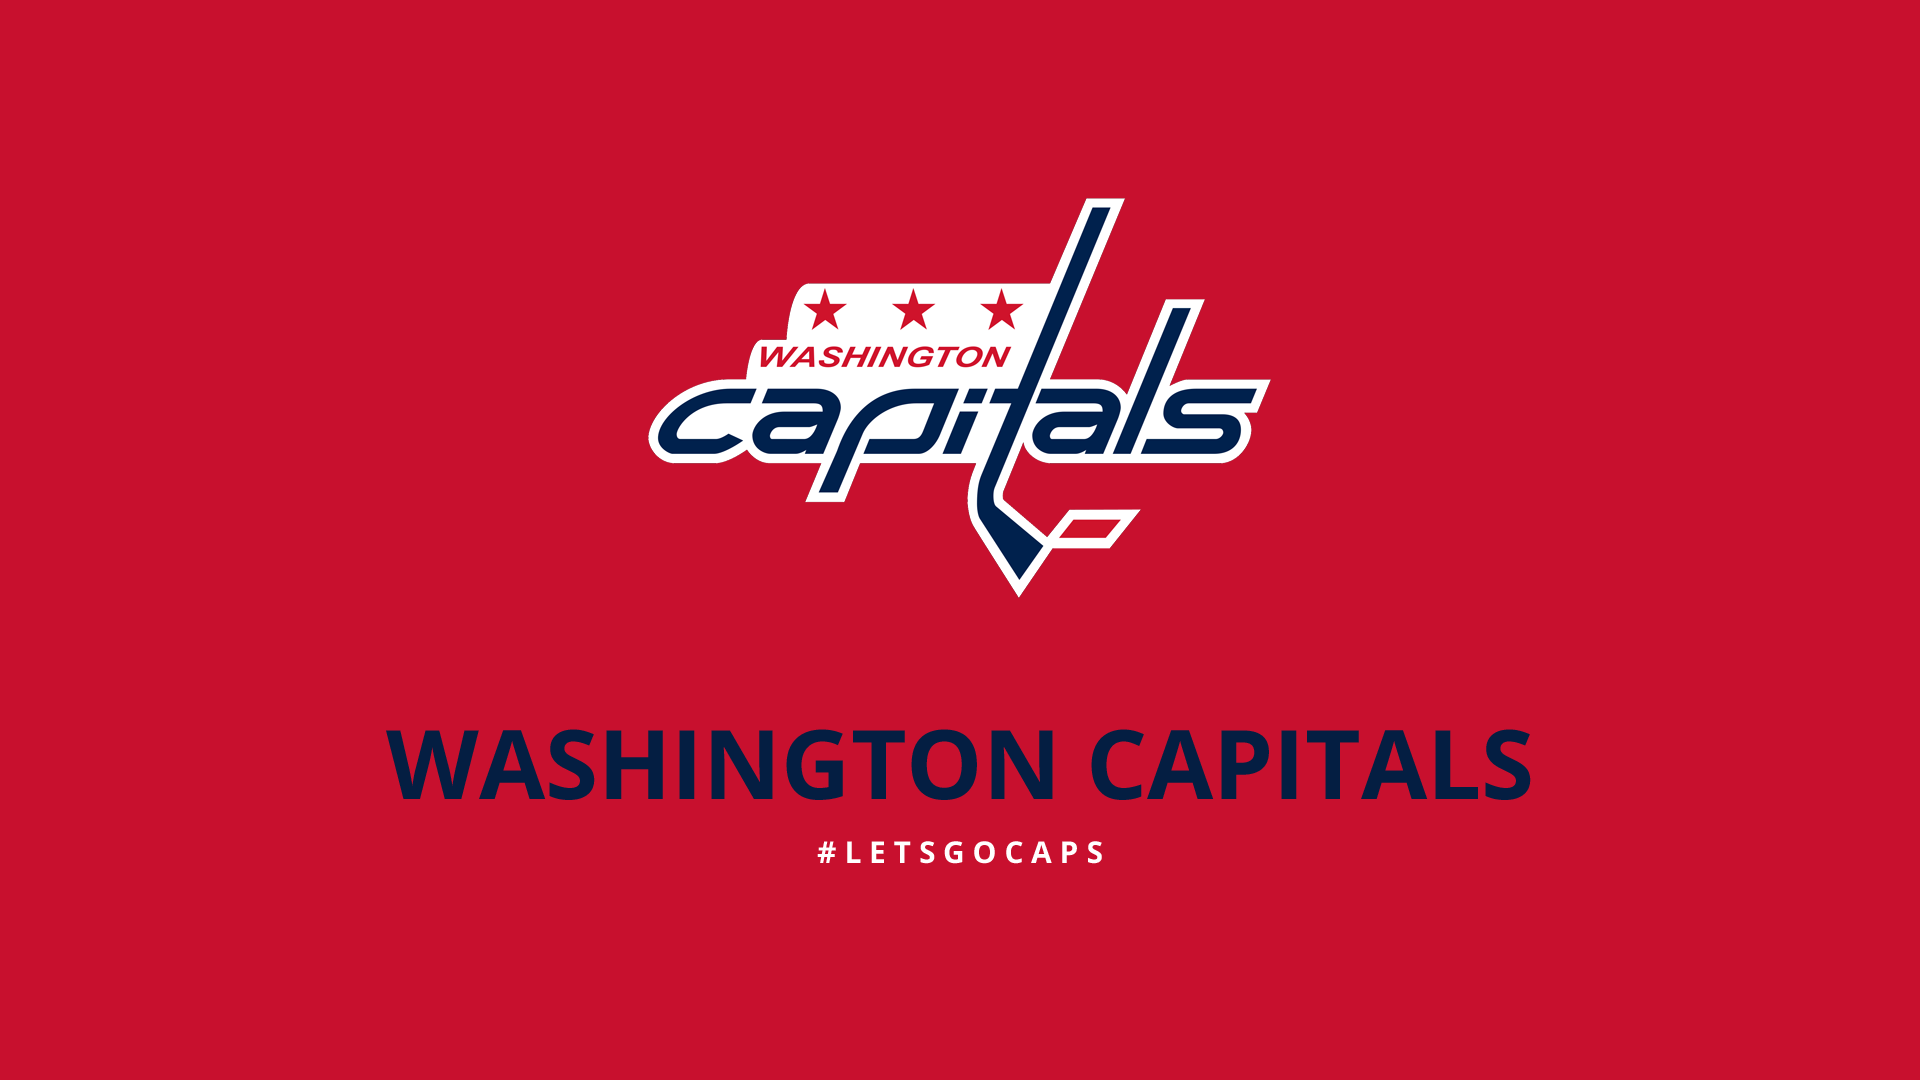 Minimalist Washington Capitals wallpaper by lfiore 1920x1080